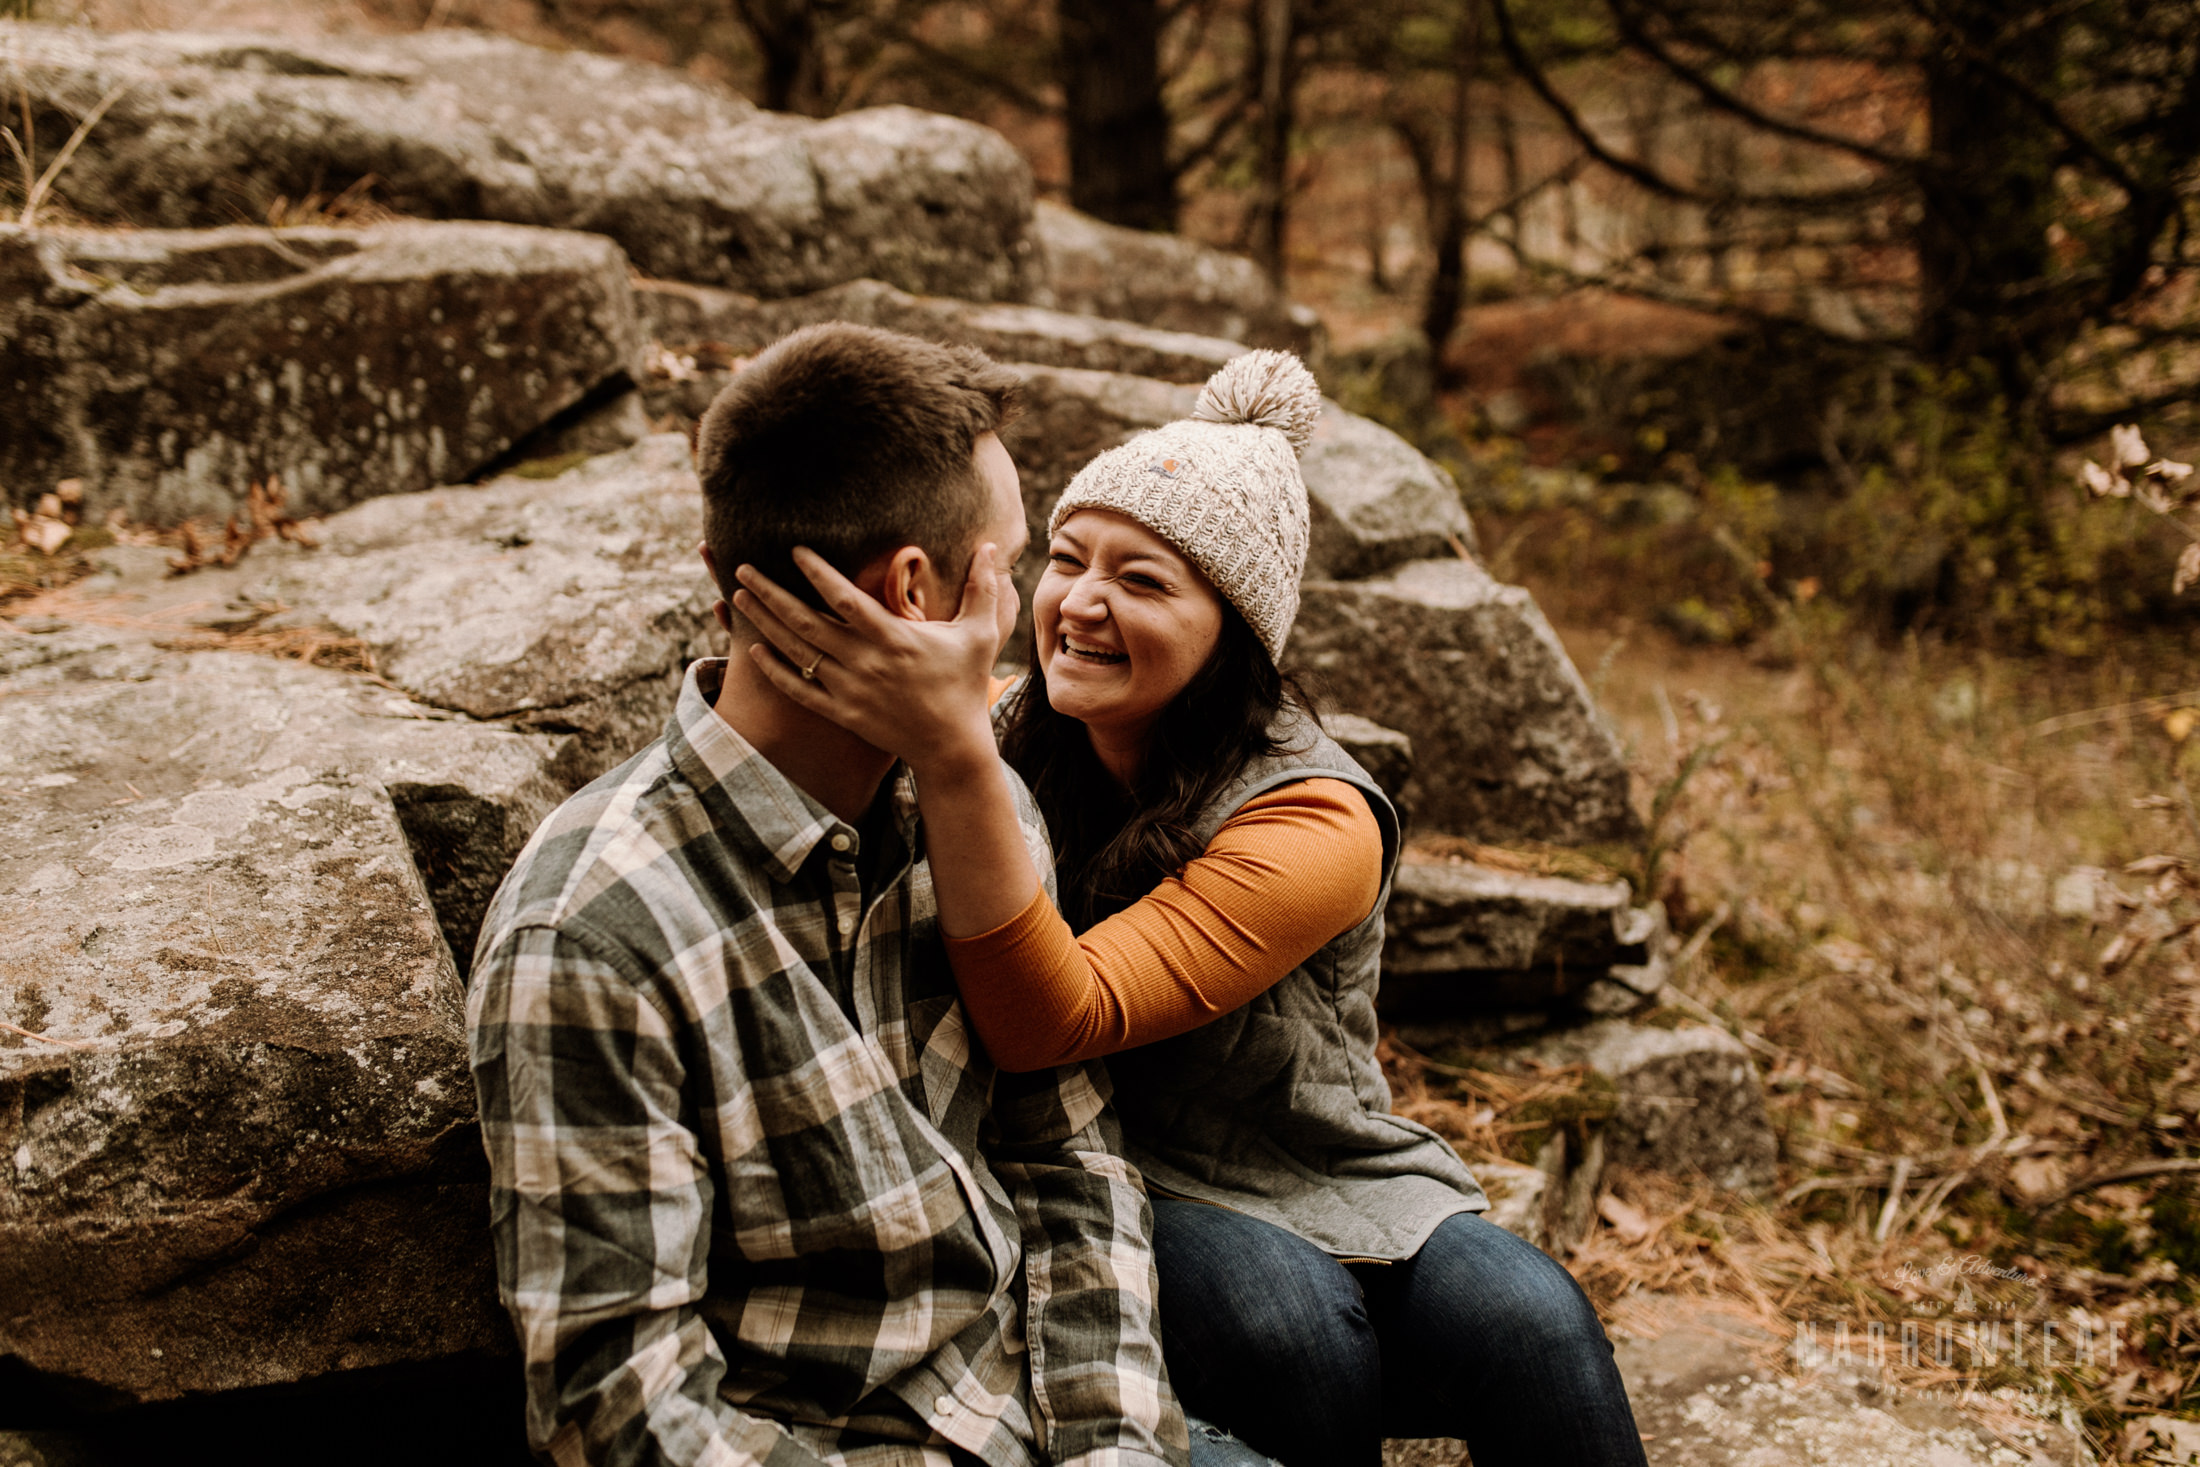 wisconsin-fall-adventure-engagement-Narrowleaf_Love_and_Adventure_Photography-0449.jpg